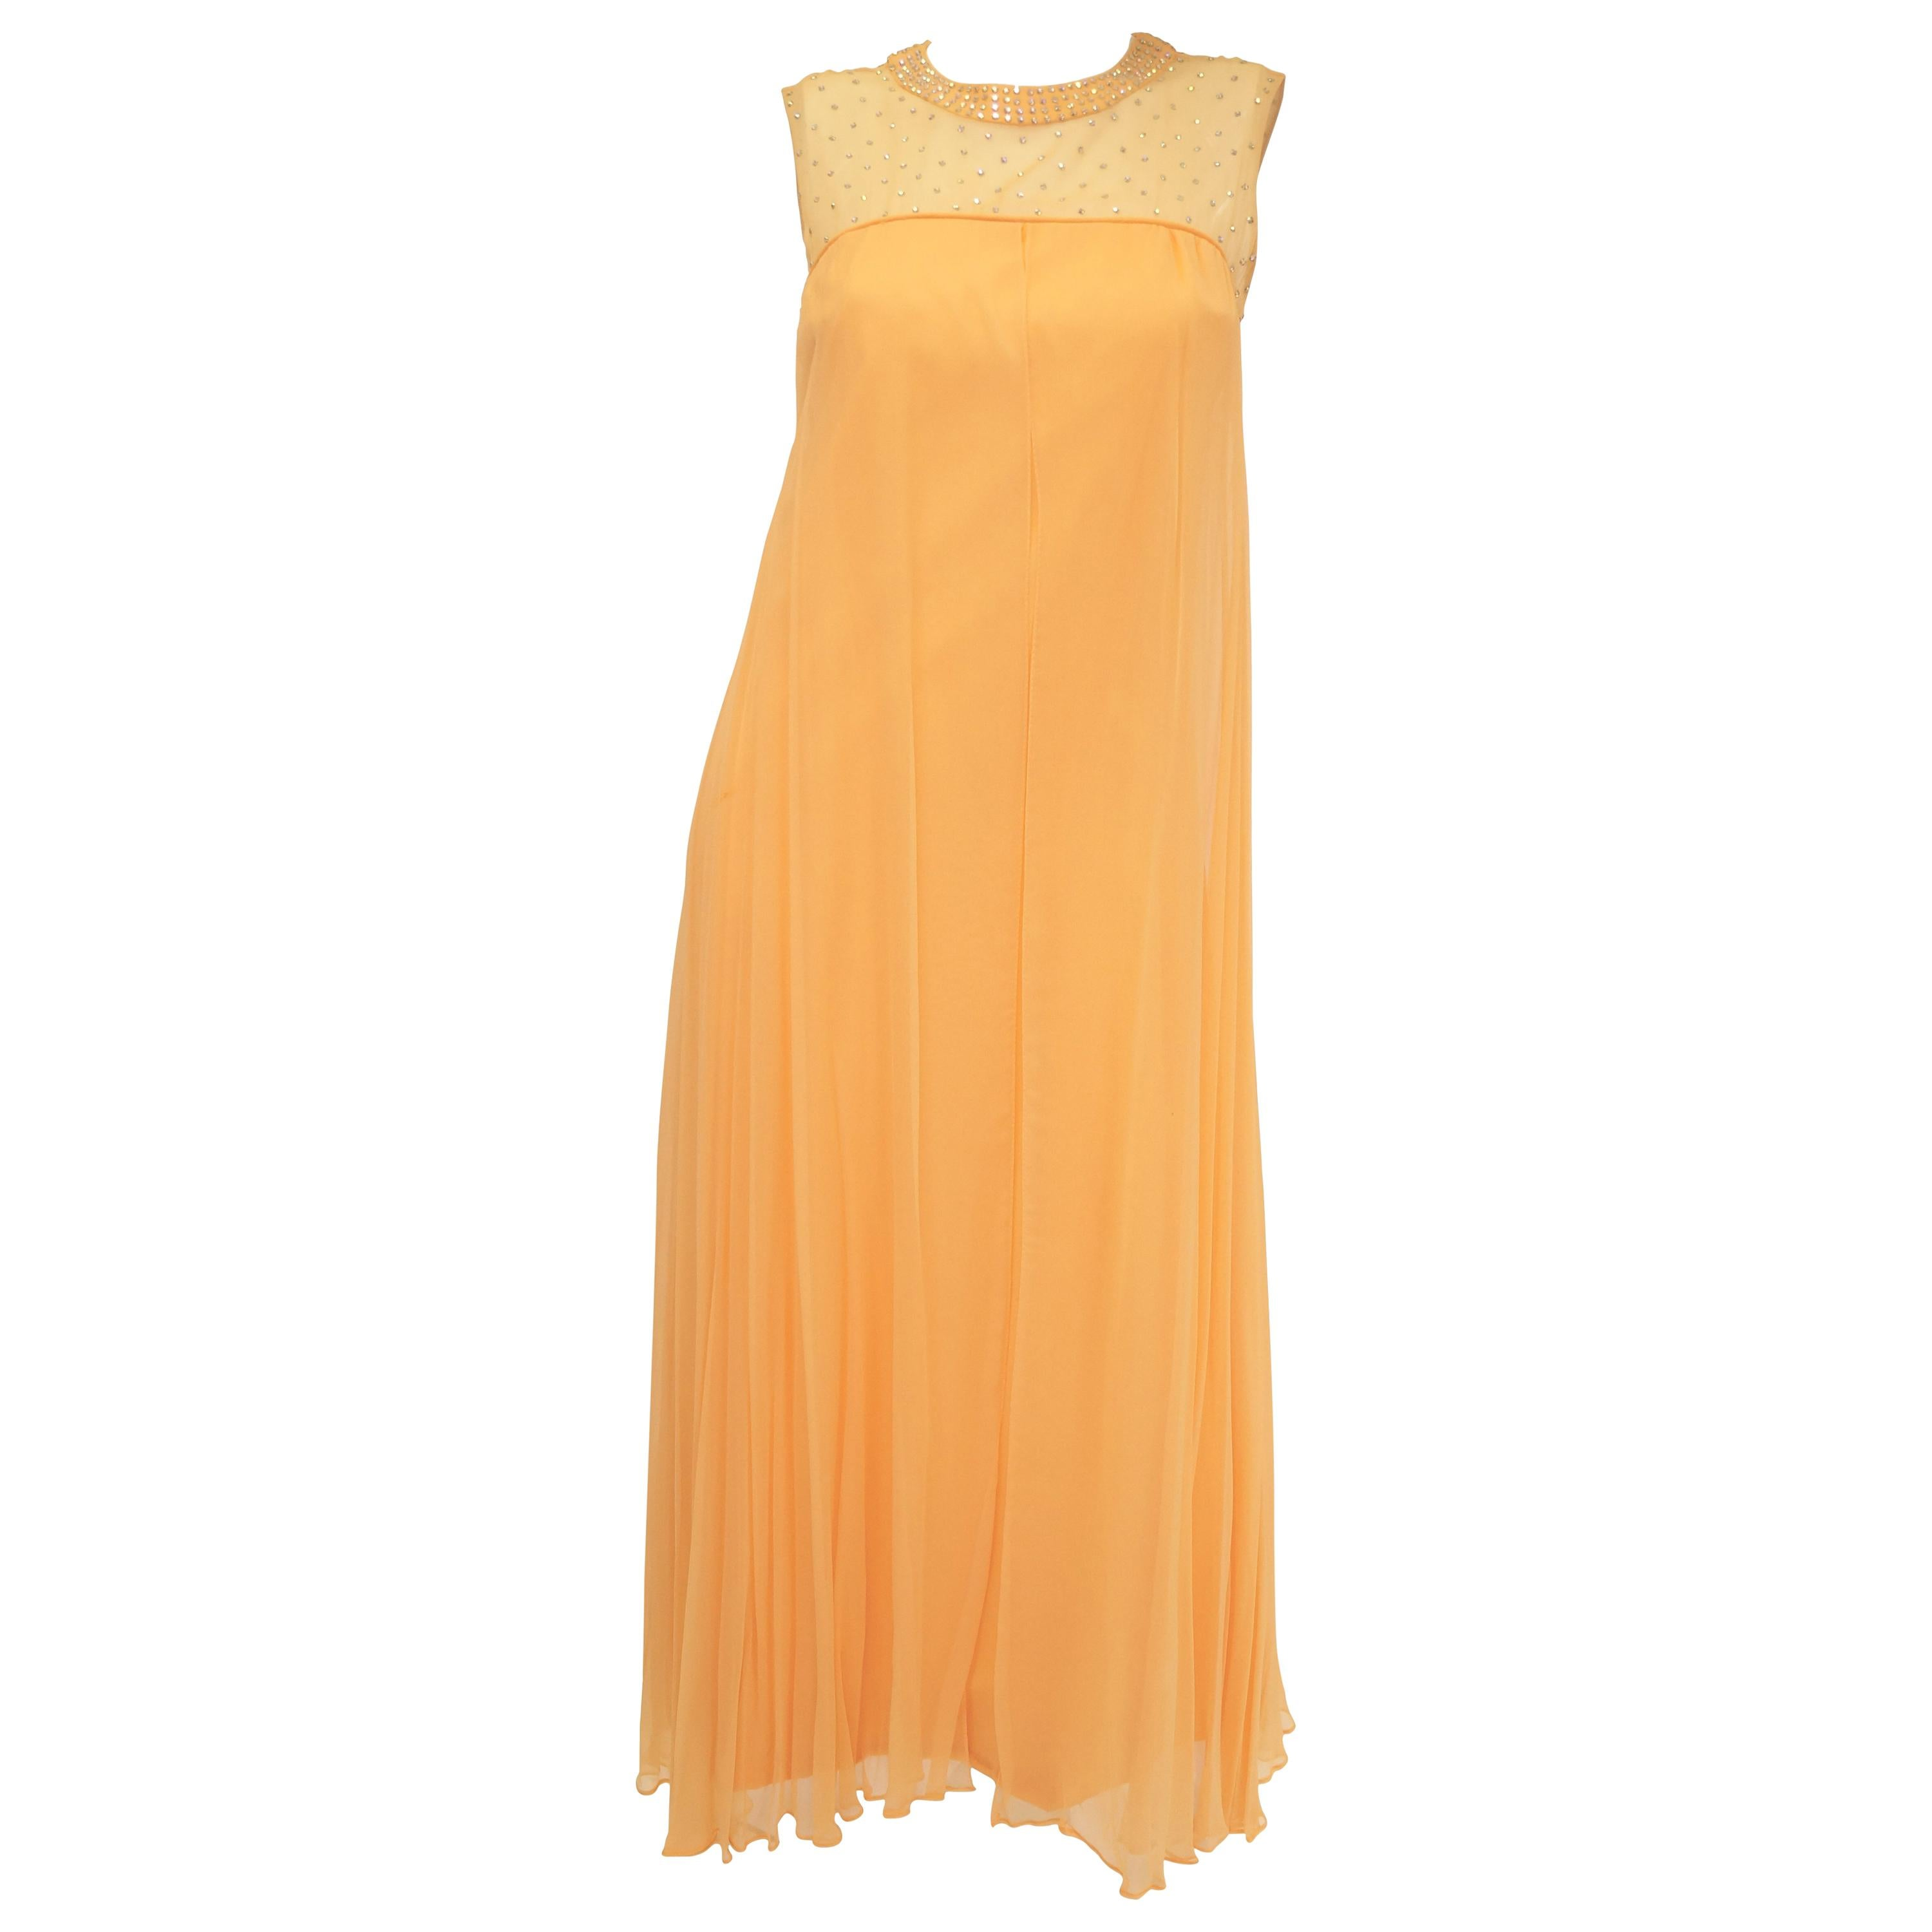 1960s Peach Crepe de Chine and Sequin Dress